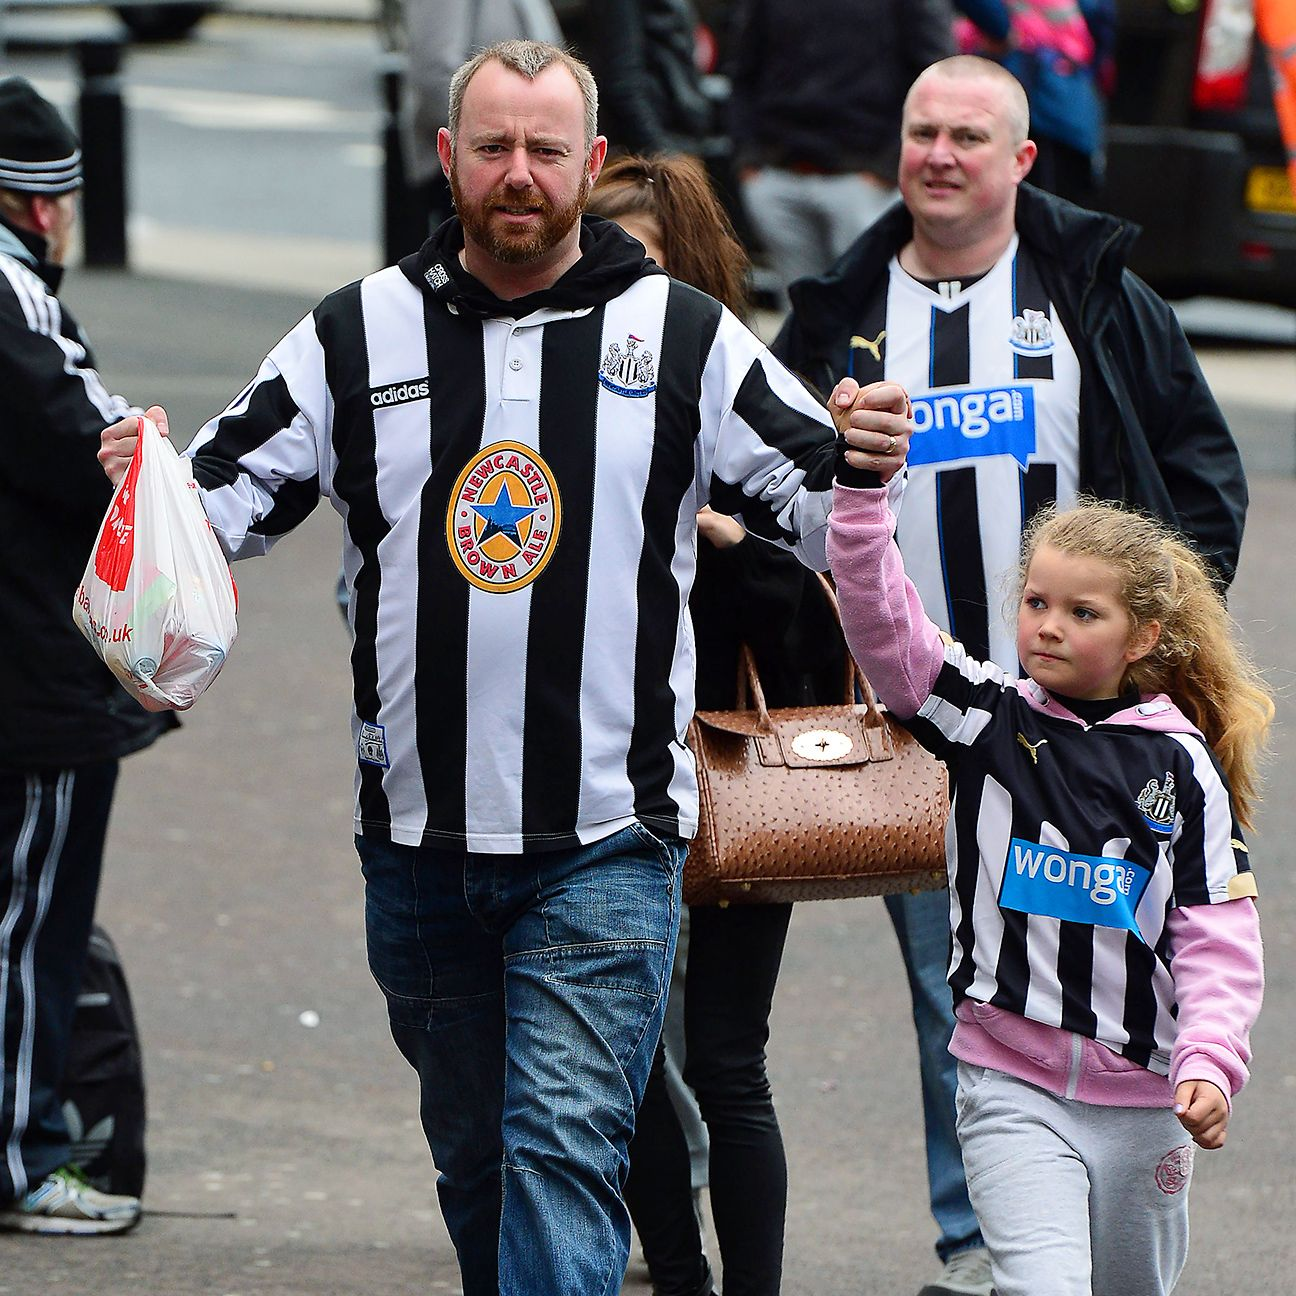 Despite a season full of grim results, the Newcastle faithful have not wavered in their support.